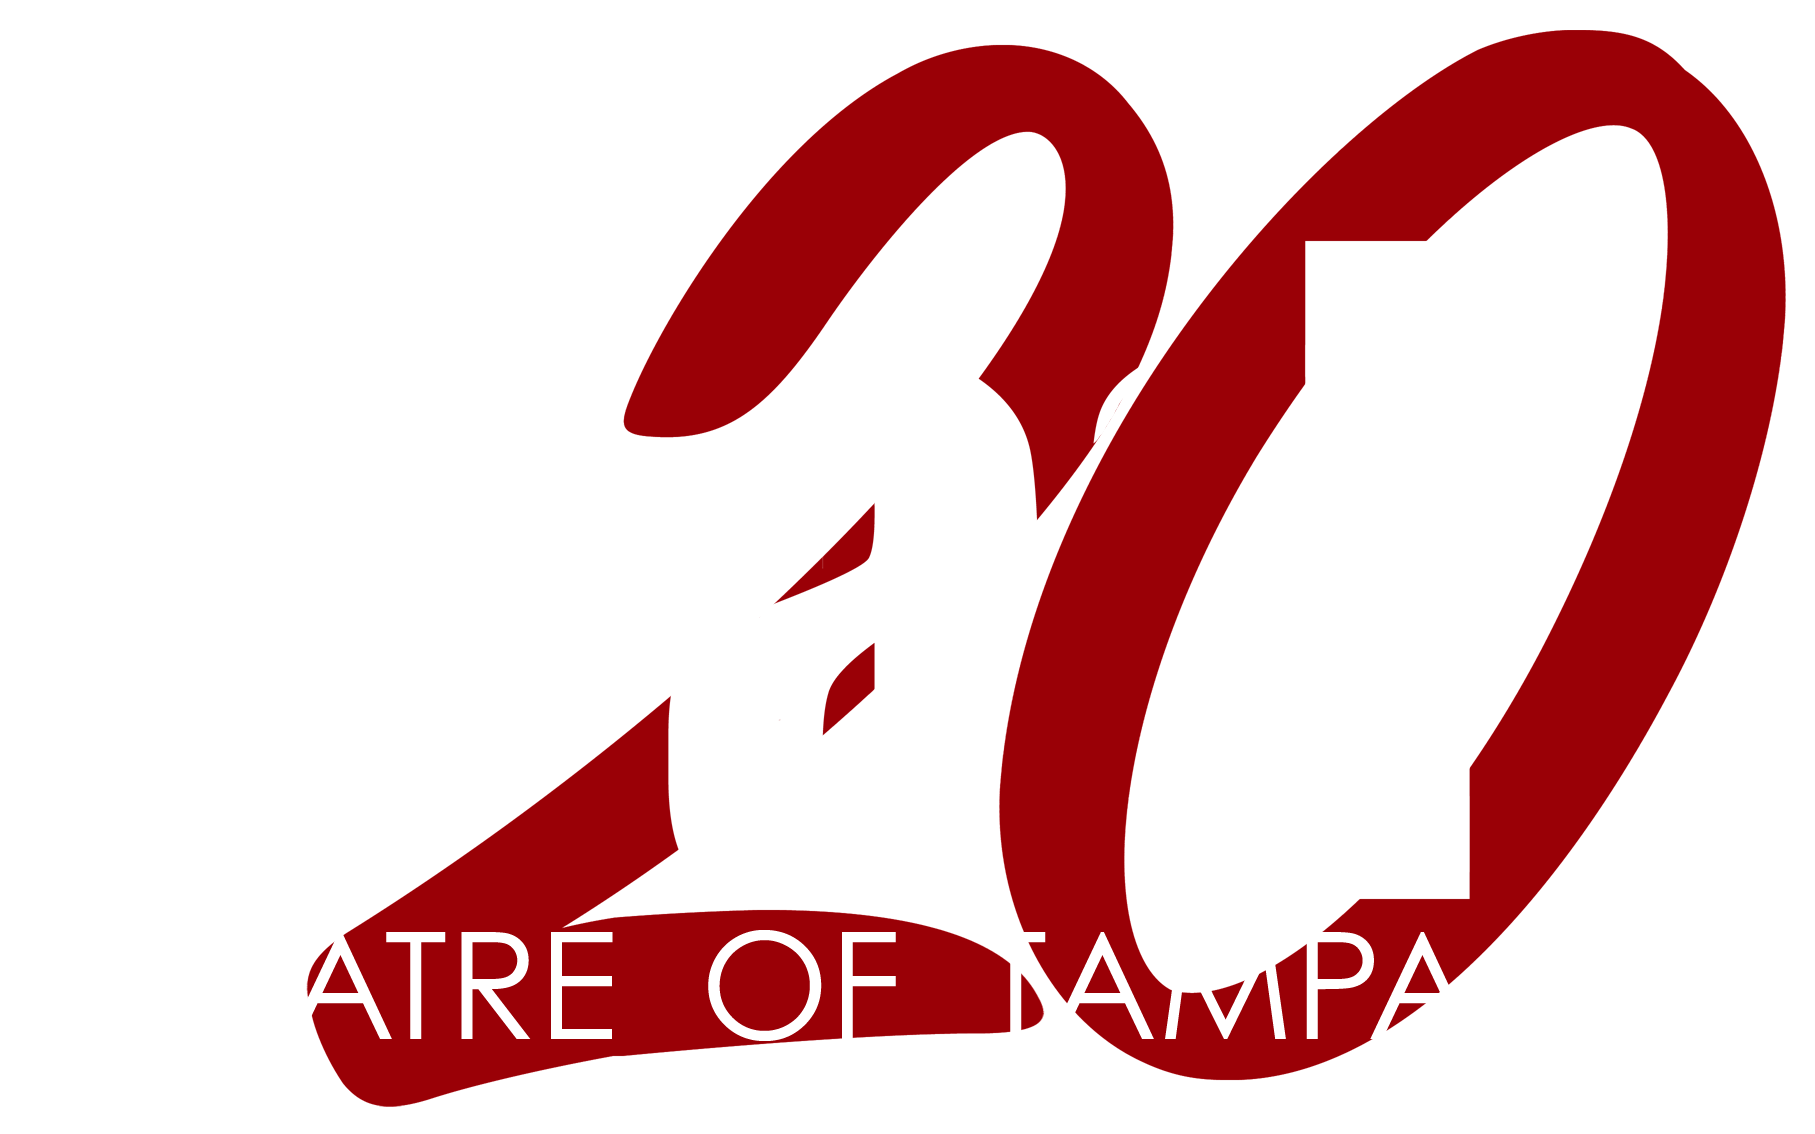 mad Theatre of Tampa